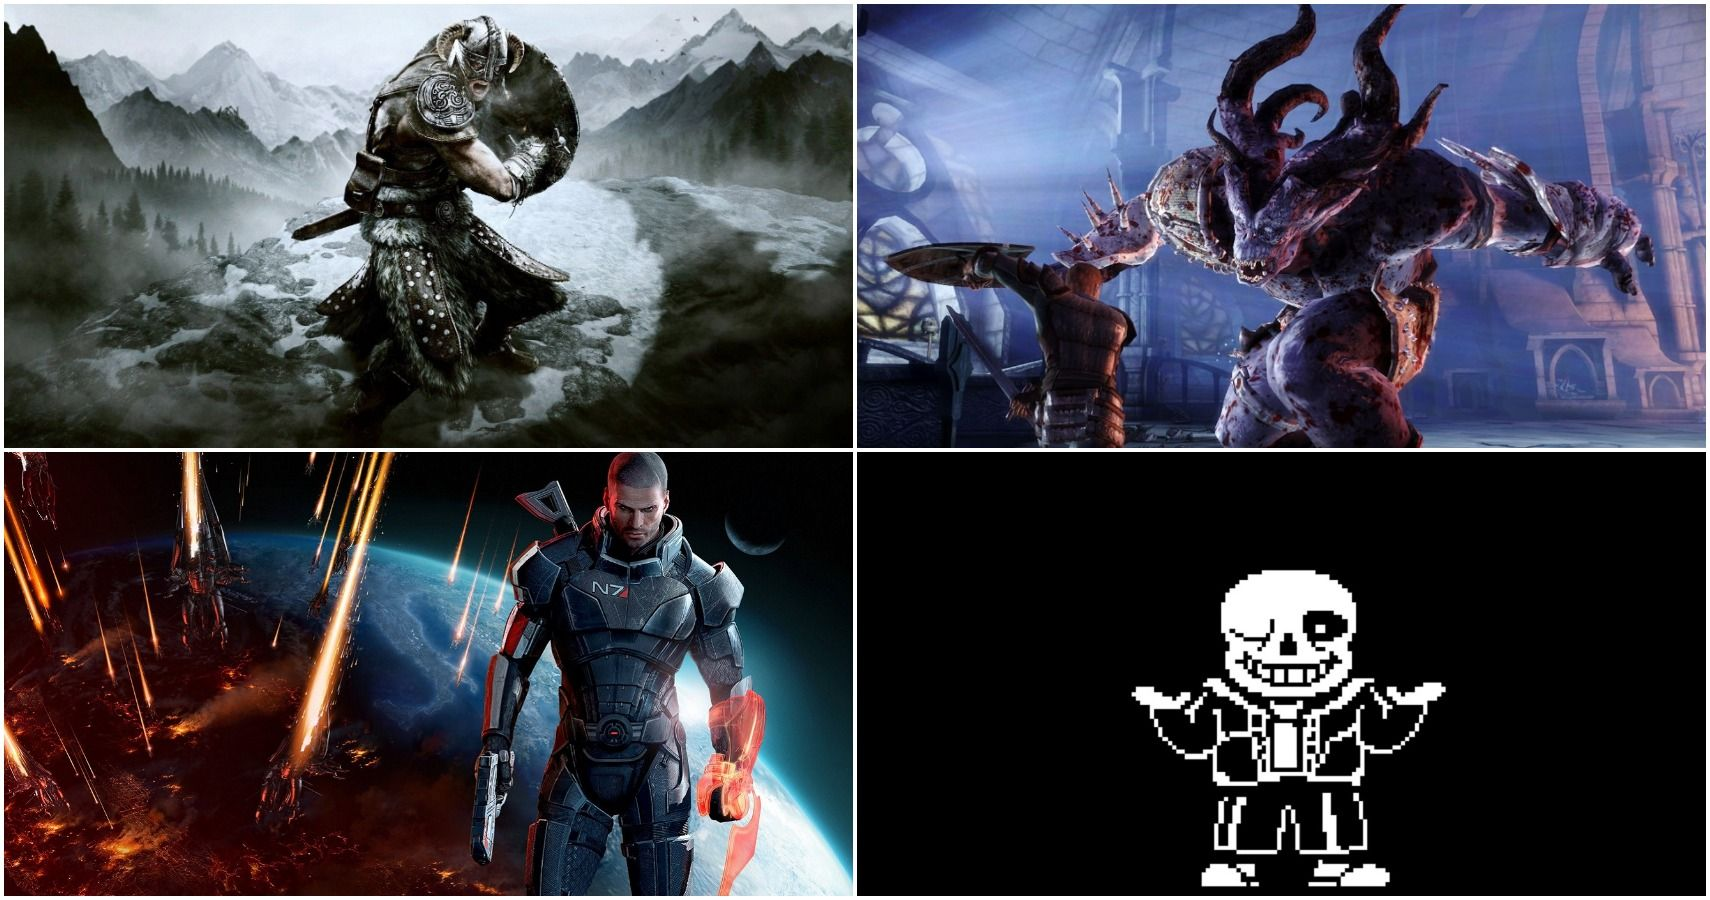 The 10 Best Rpgs Of The Last Decade According To Metacritic